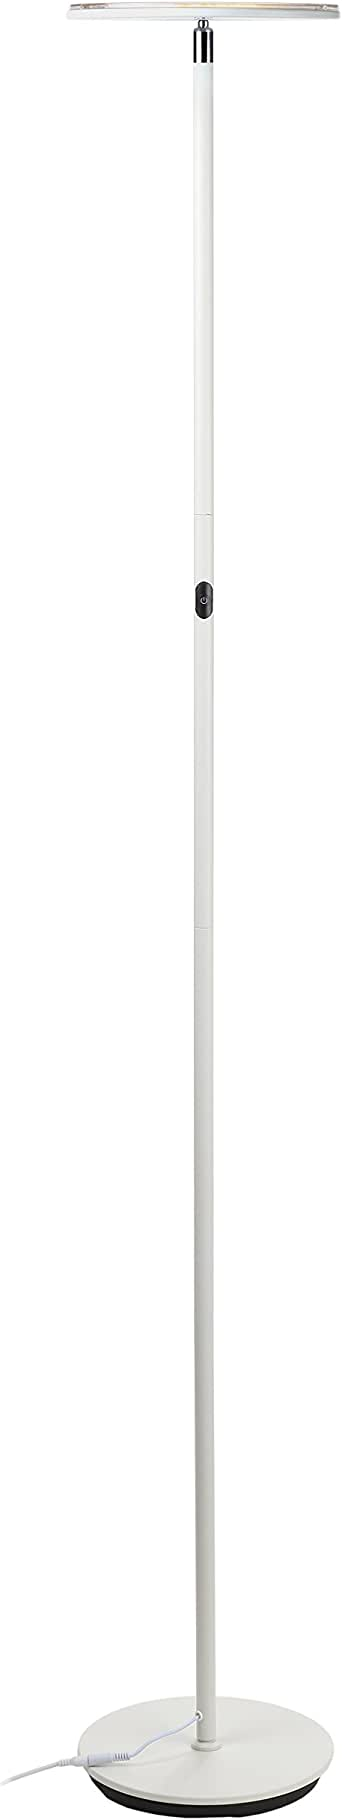 Brightech - SKY LED Torchiere Floor Lamp - Dimmable Super Bright 30-Watt LED - Warm White Color - Omni-Directional Head - Sleek White Finish